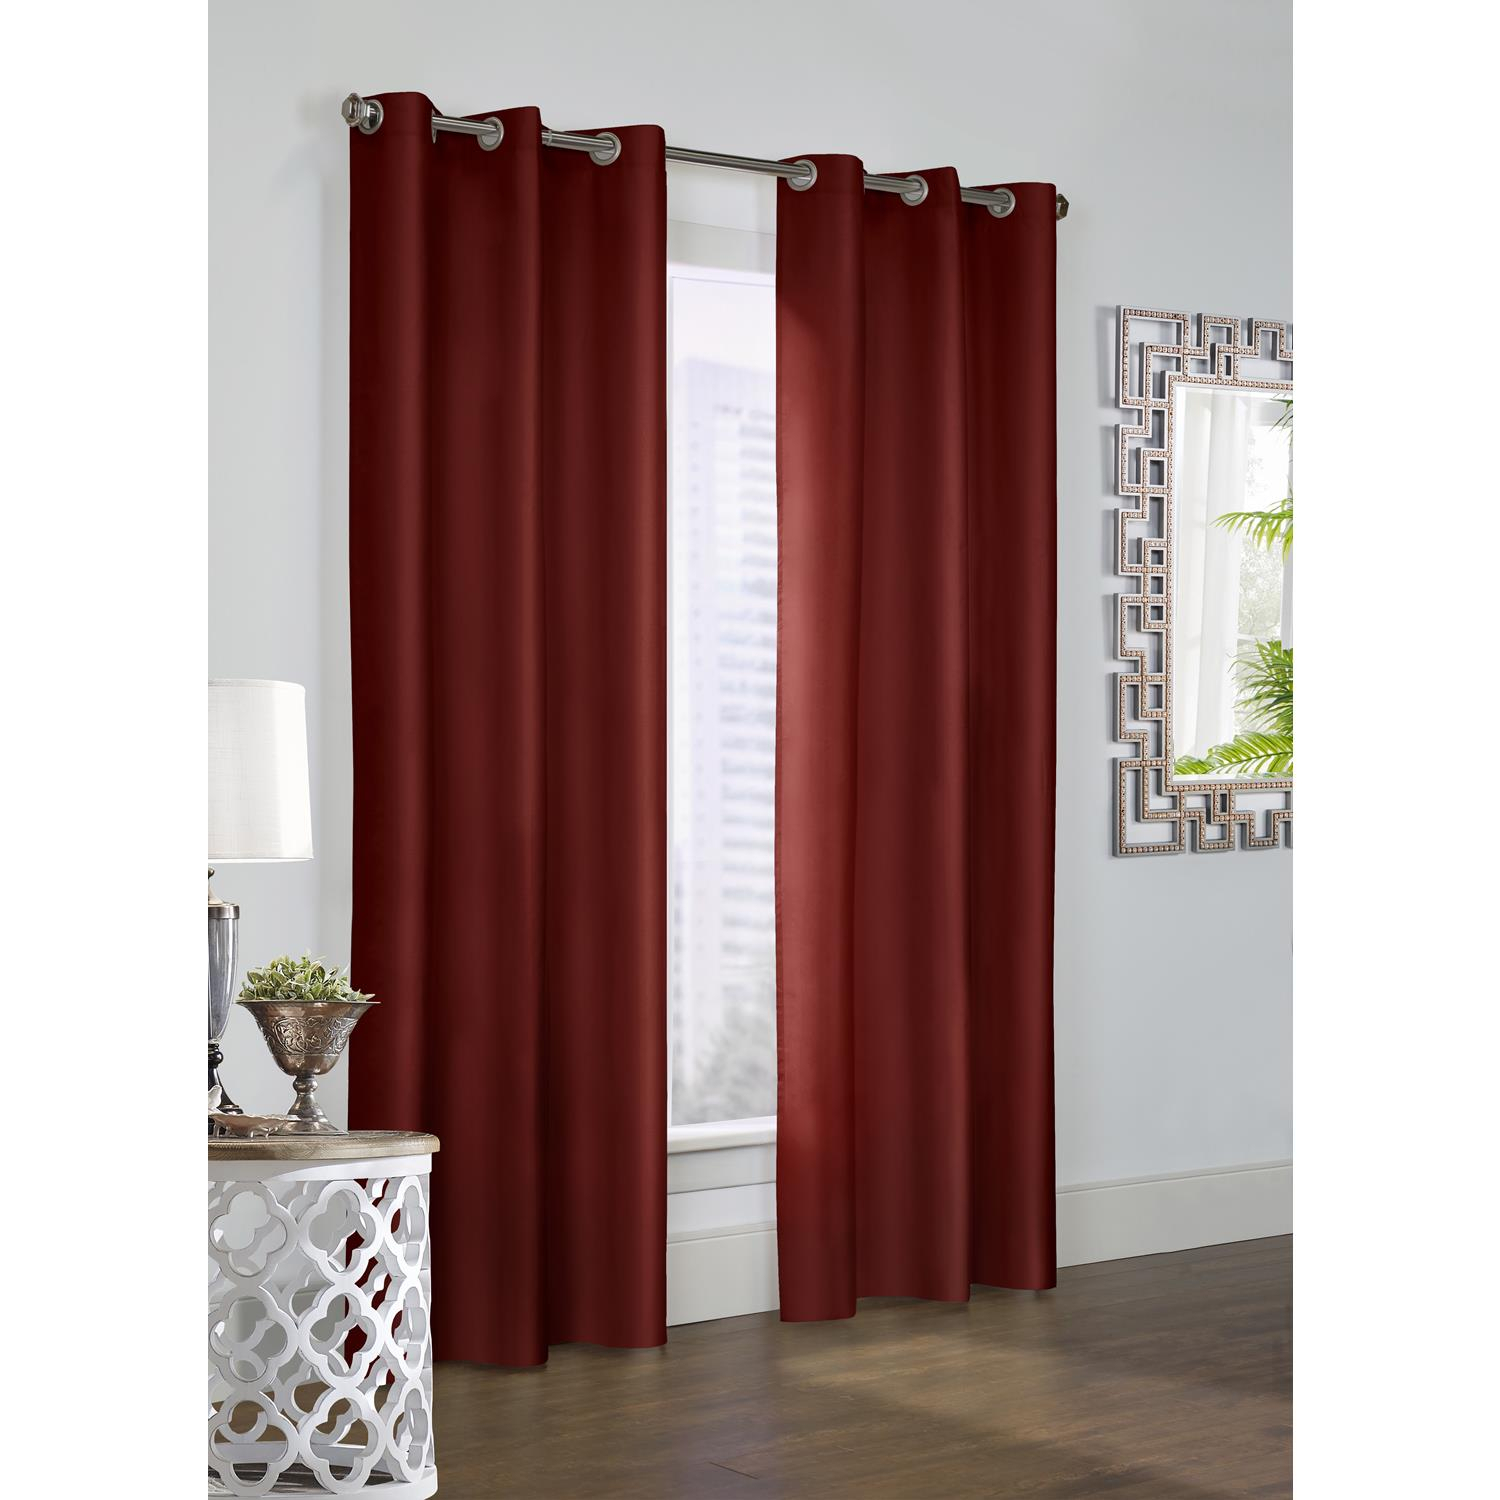 Details About Commonwealth Thermalogic Prescott Alcove Grommet Top Curtain Panel Pair For Caldwell Curtain Panel Pairs (View 3 of 20)